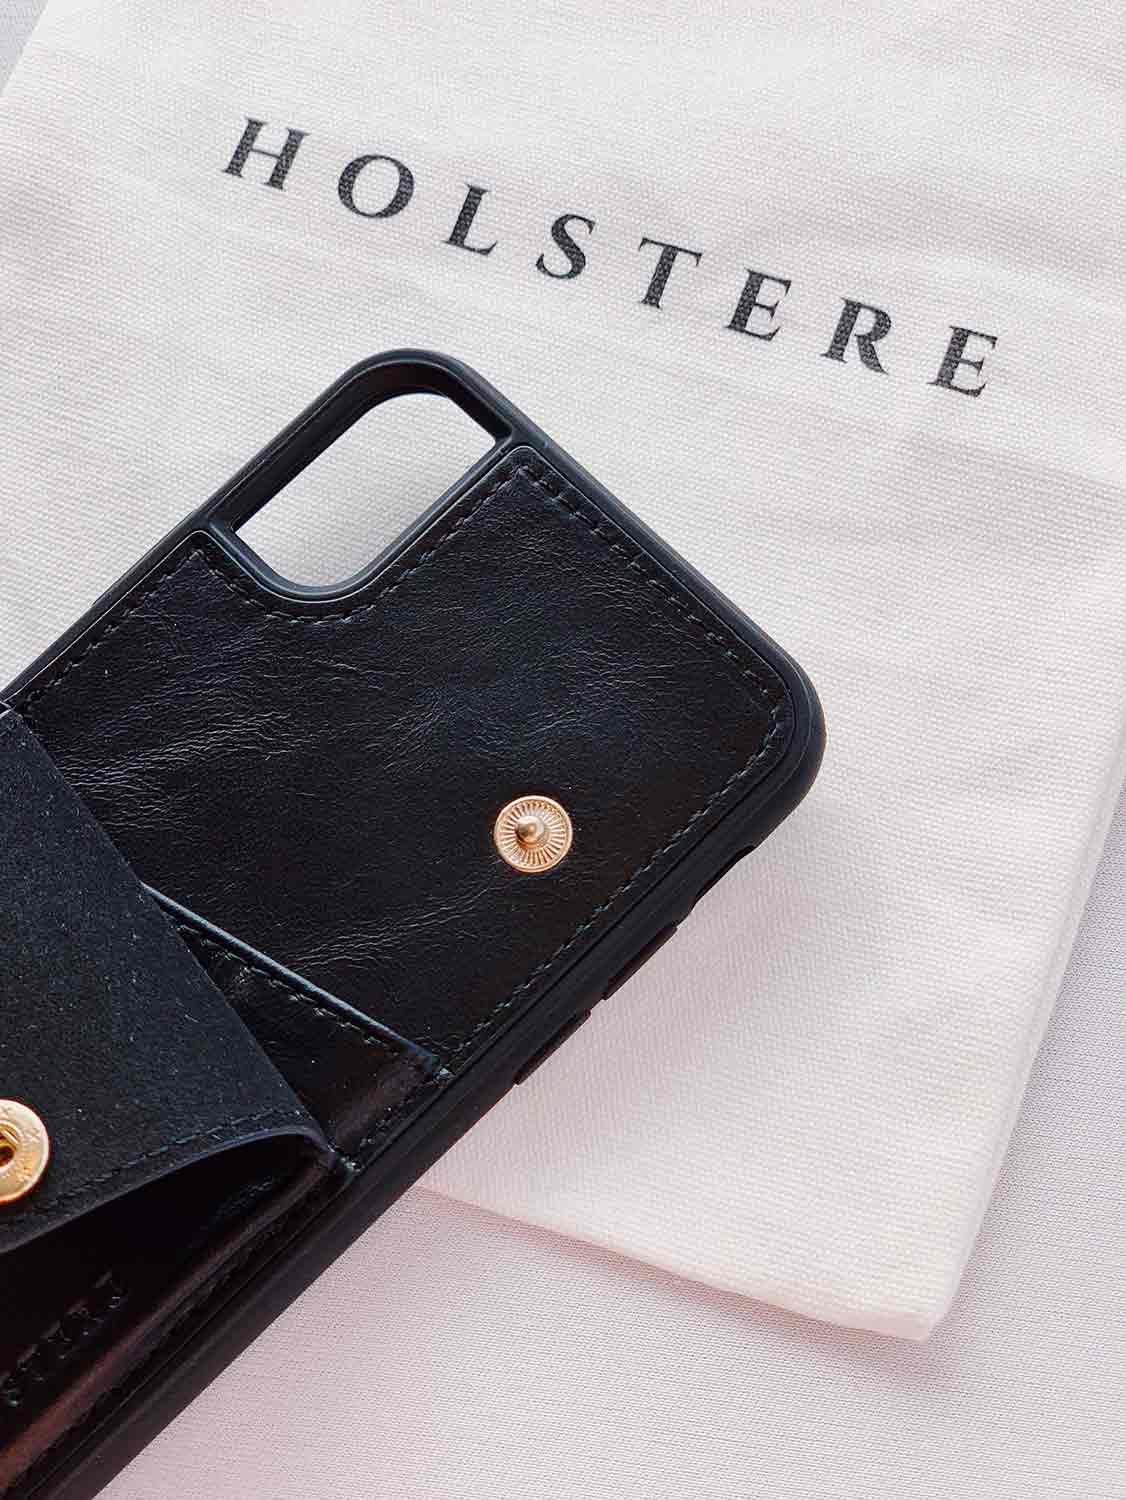 Holstere iPhone Case Crossbody - The London (Black)